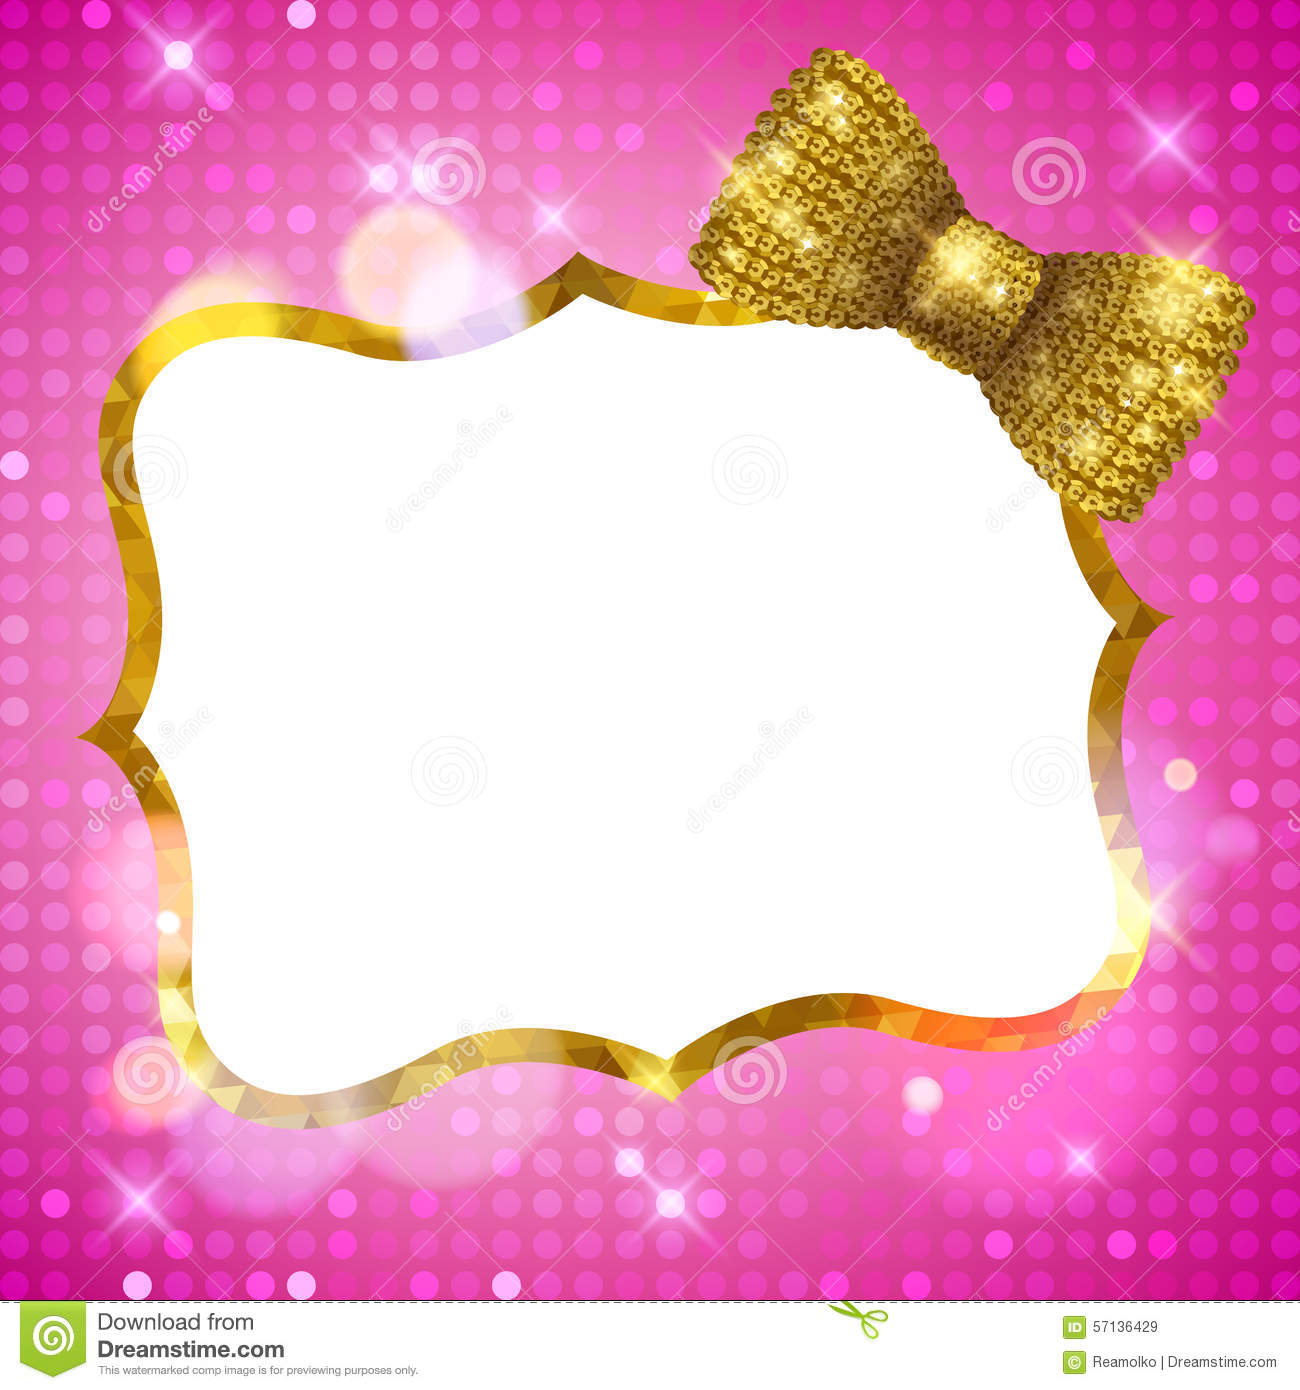 Glitter Glamour Shine Background Frame With Mosaic Stock Vector